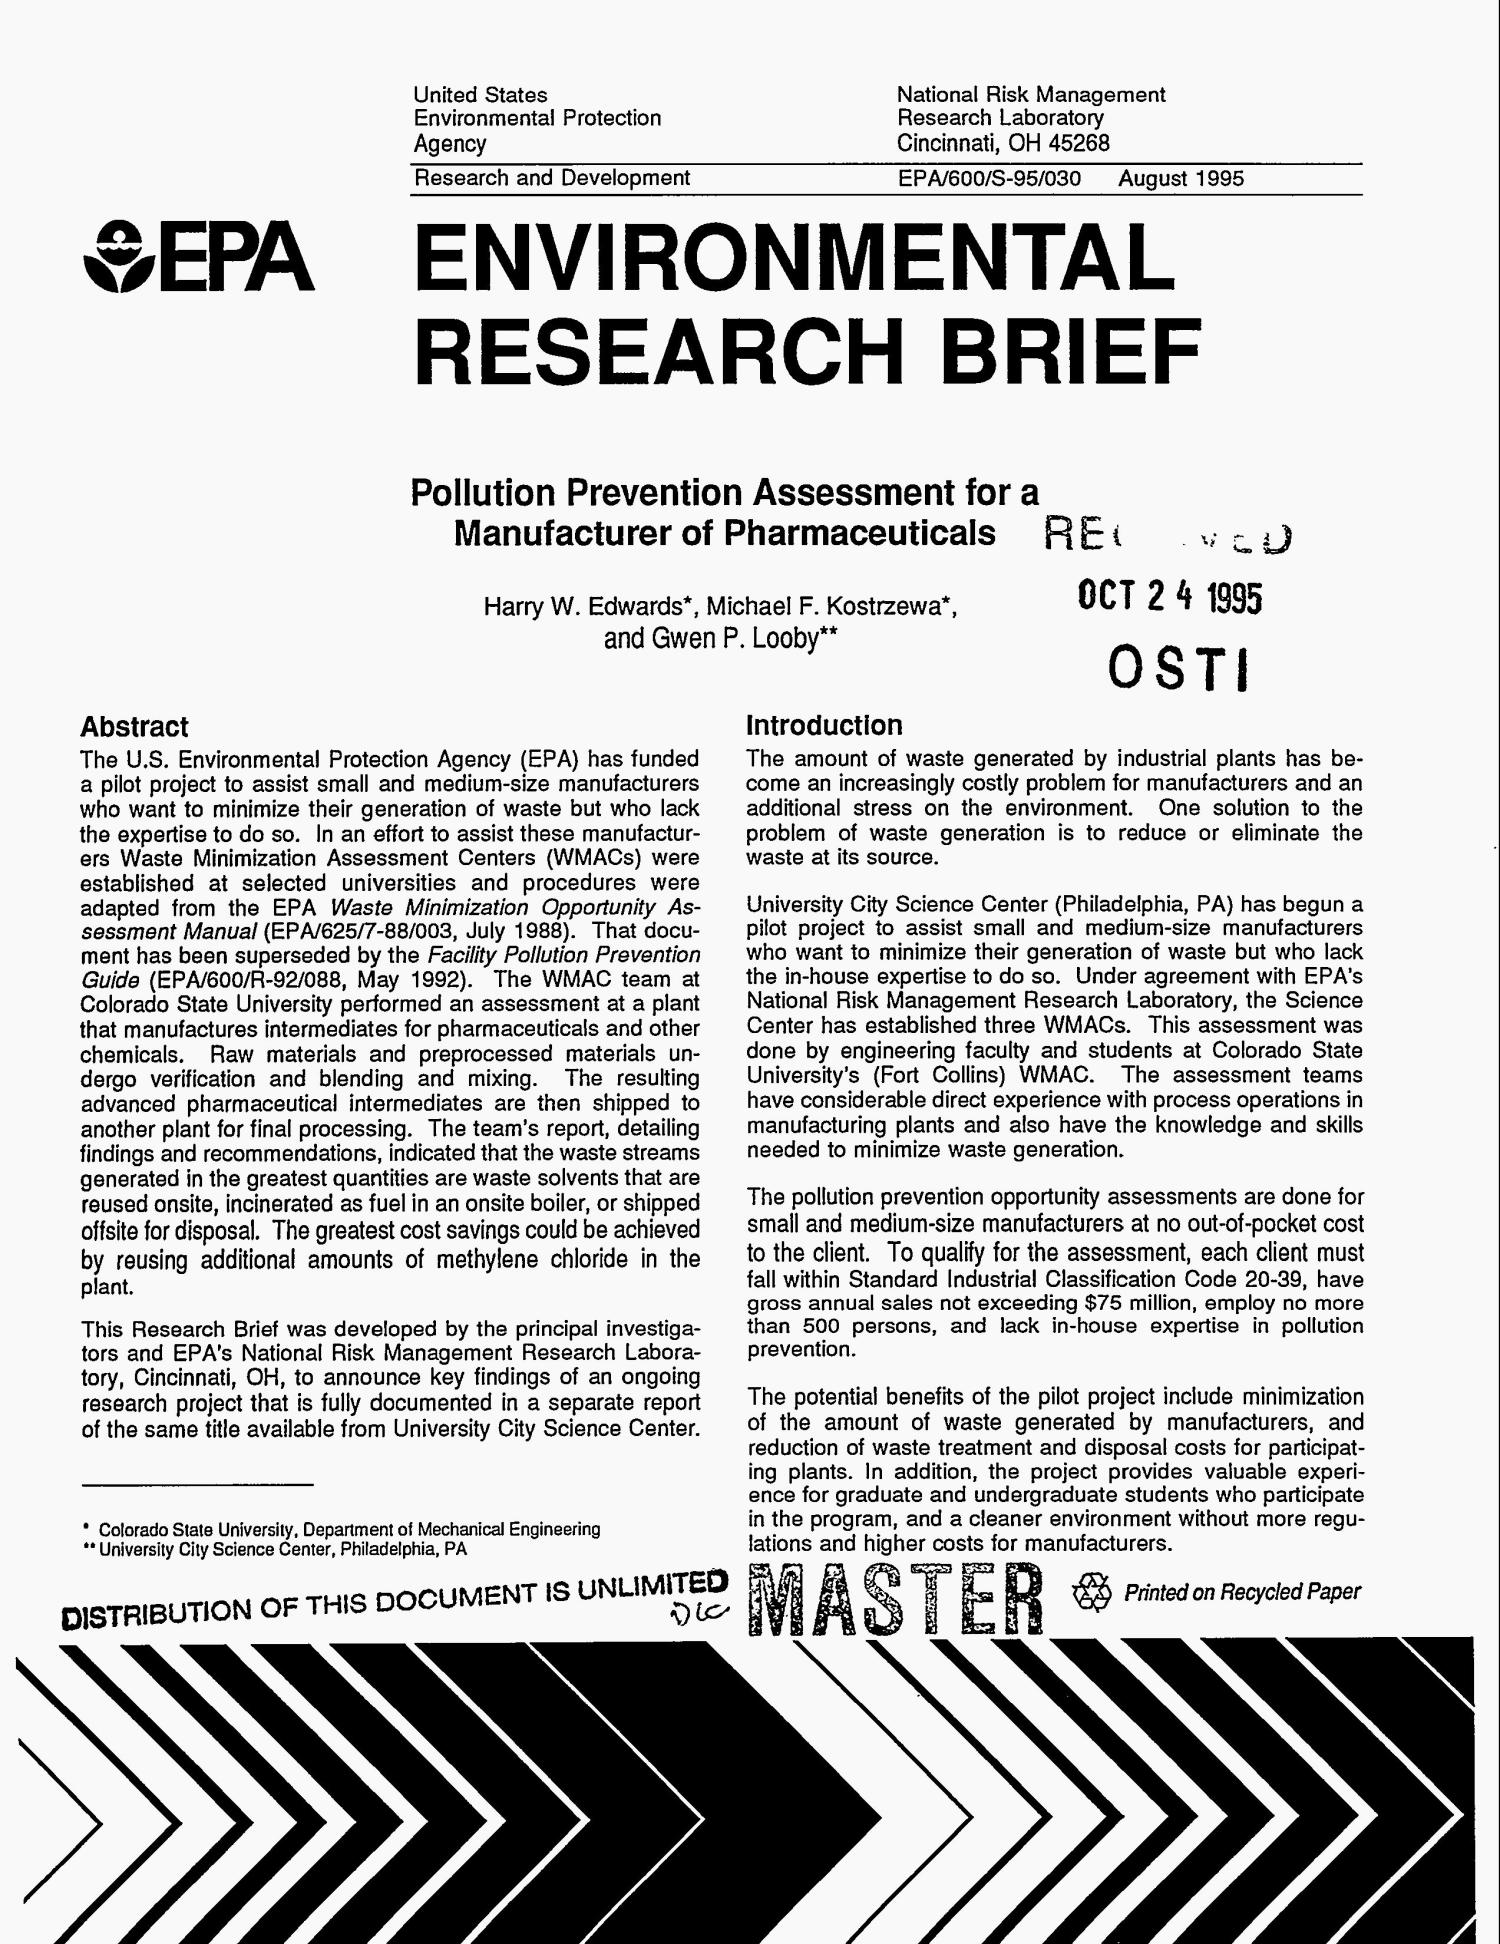 Environmental Research Brief: Pollution prevention assessment for a manufacturer of pharmaceuticals                                                                                                      [Sequence #]: 1 of 7